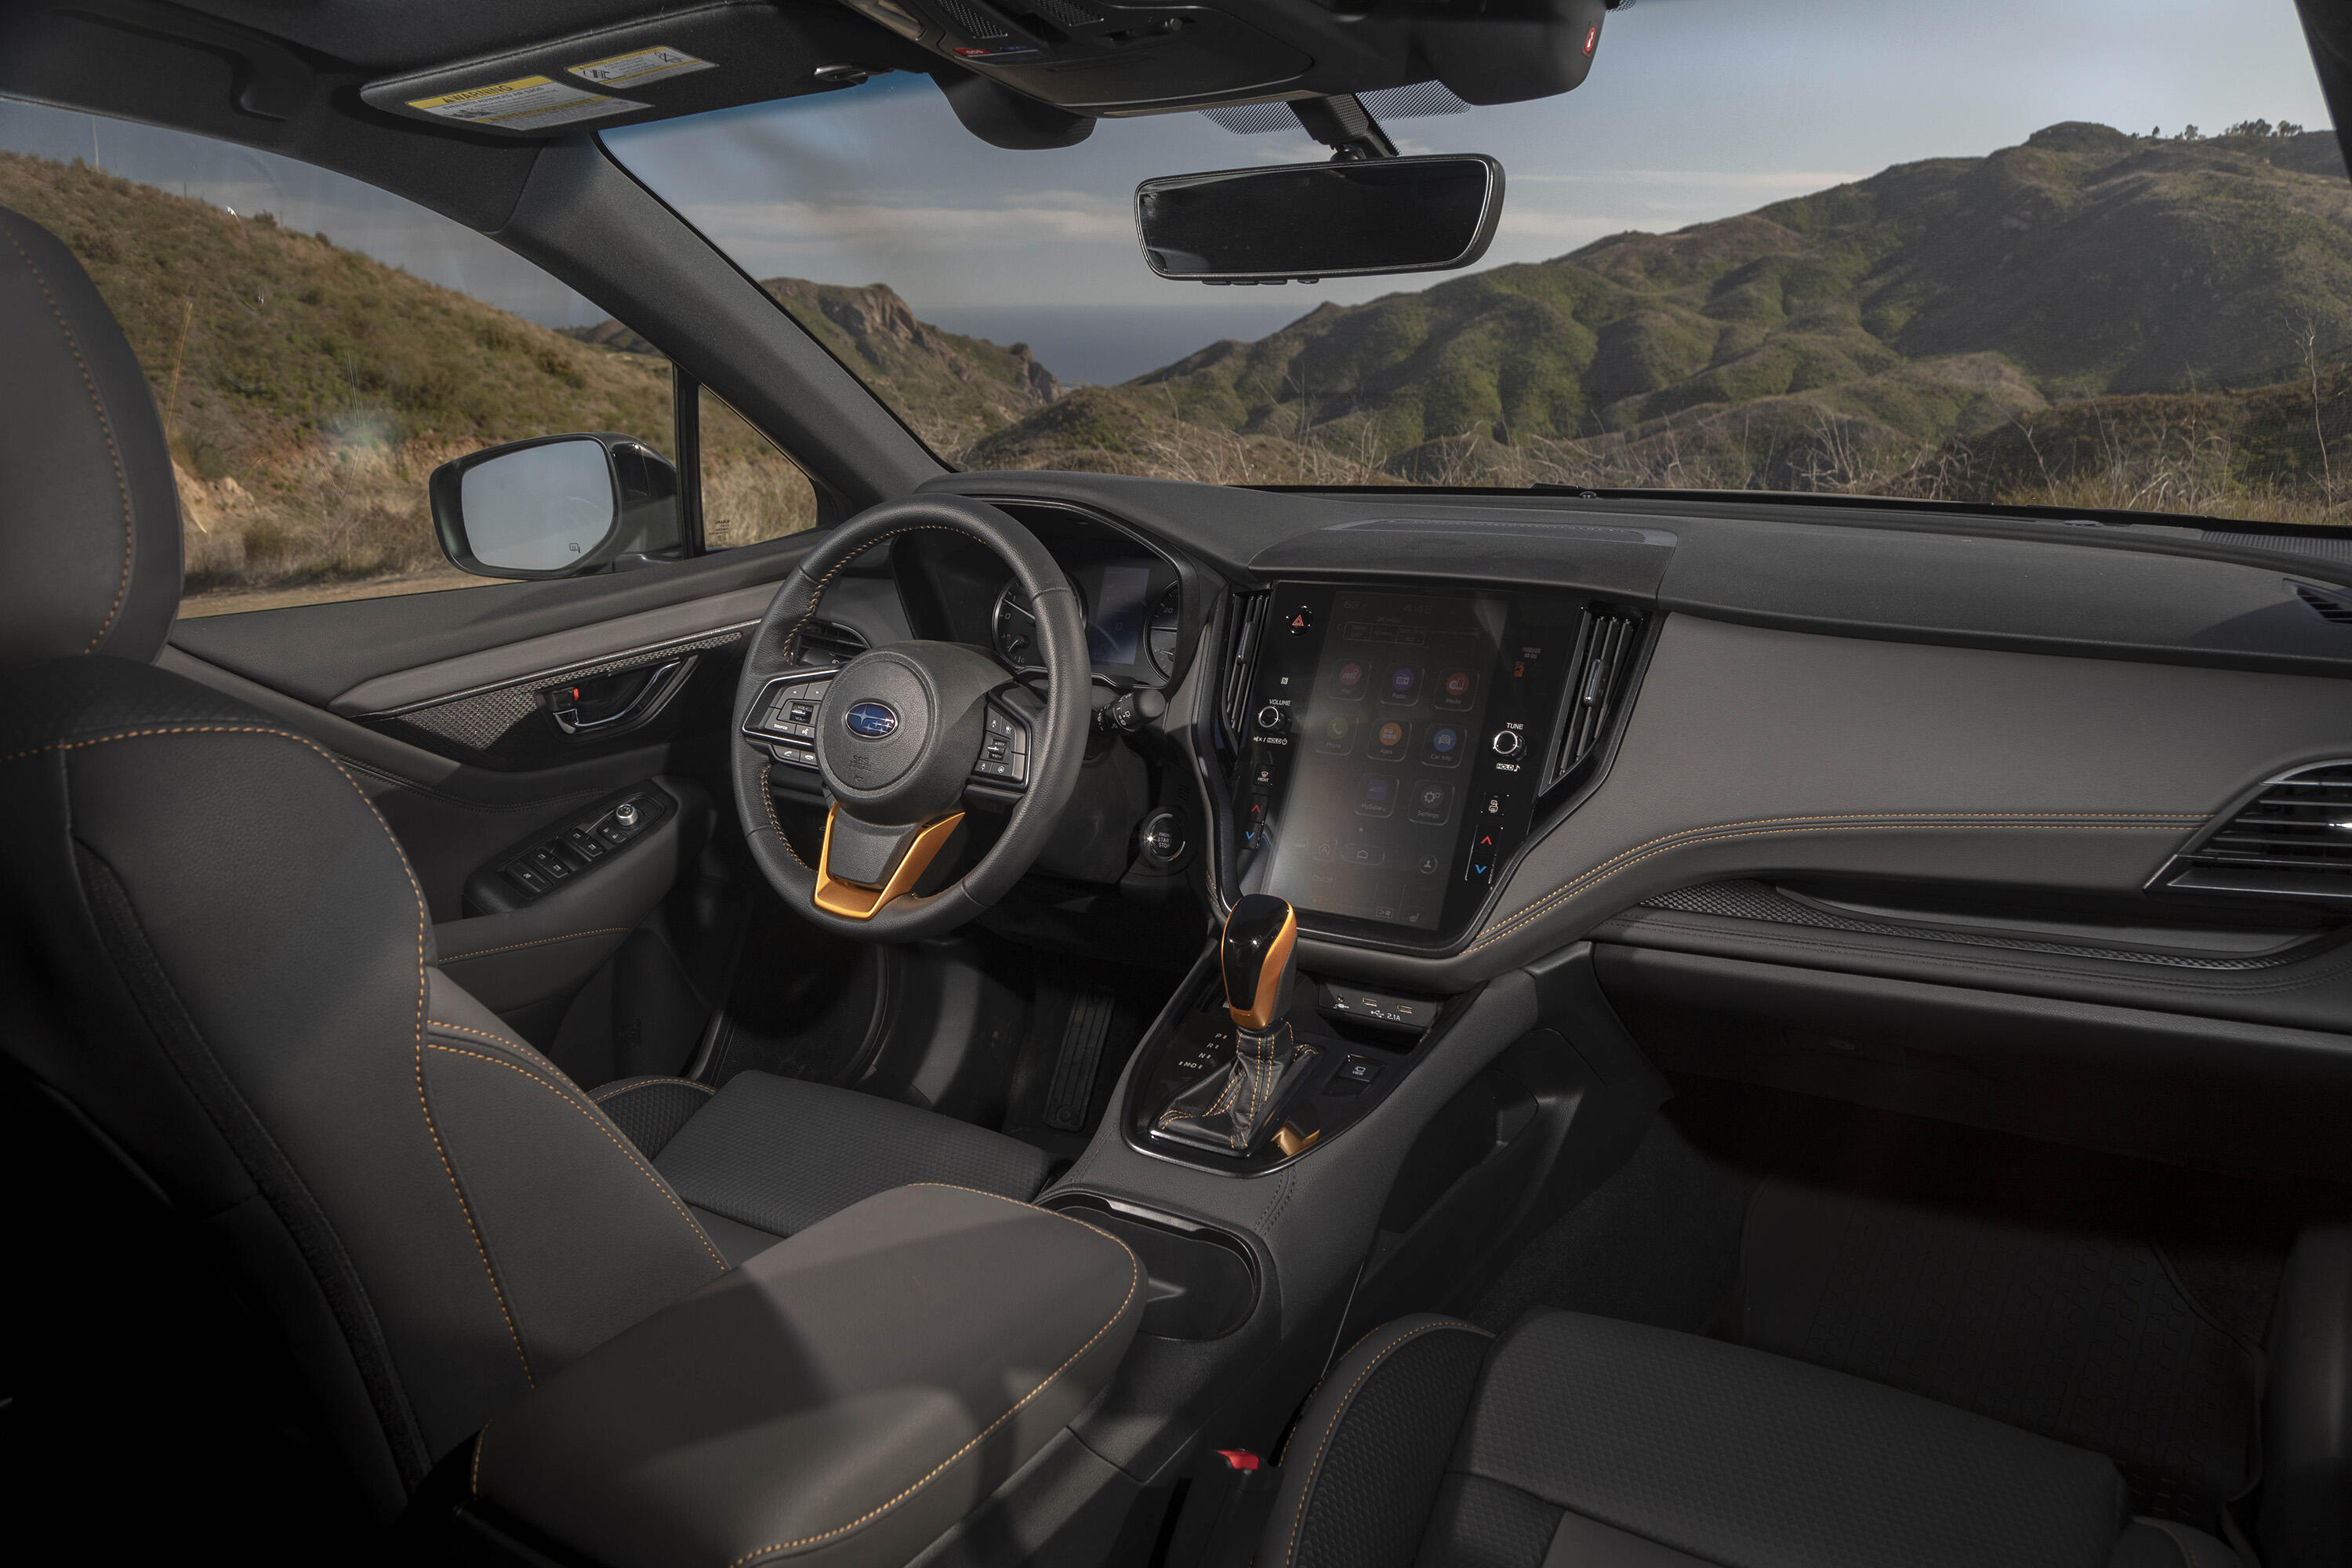 2022 Subaru Outback Wilderness has rugged looks and capability to match - Roadshow